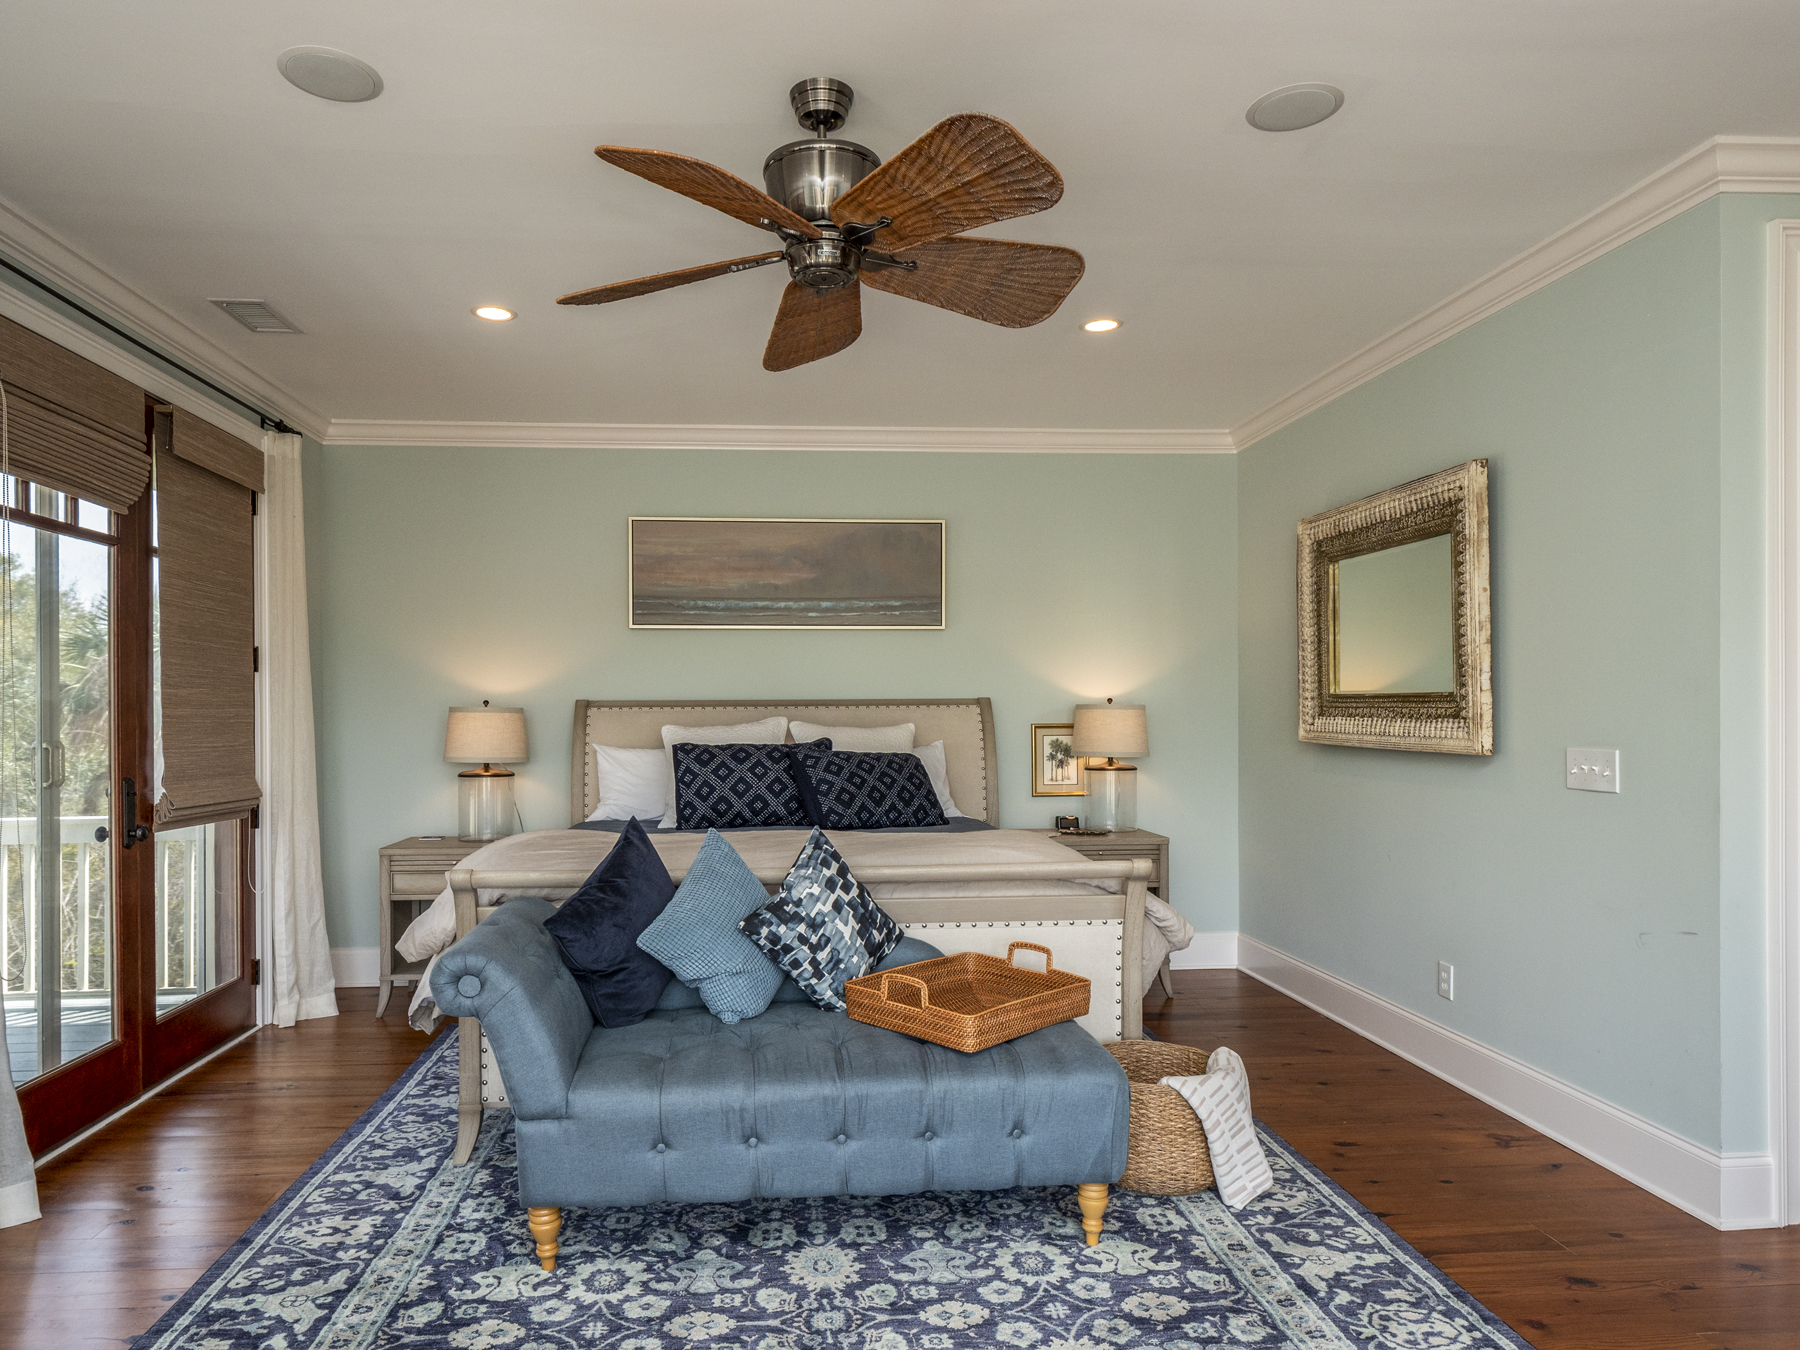 The master suite has a king bed and three sets of french doors, flooding this room with natural light and gorgeous views.